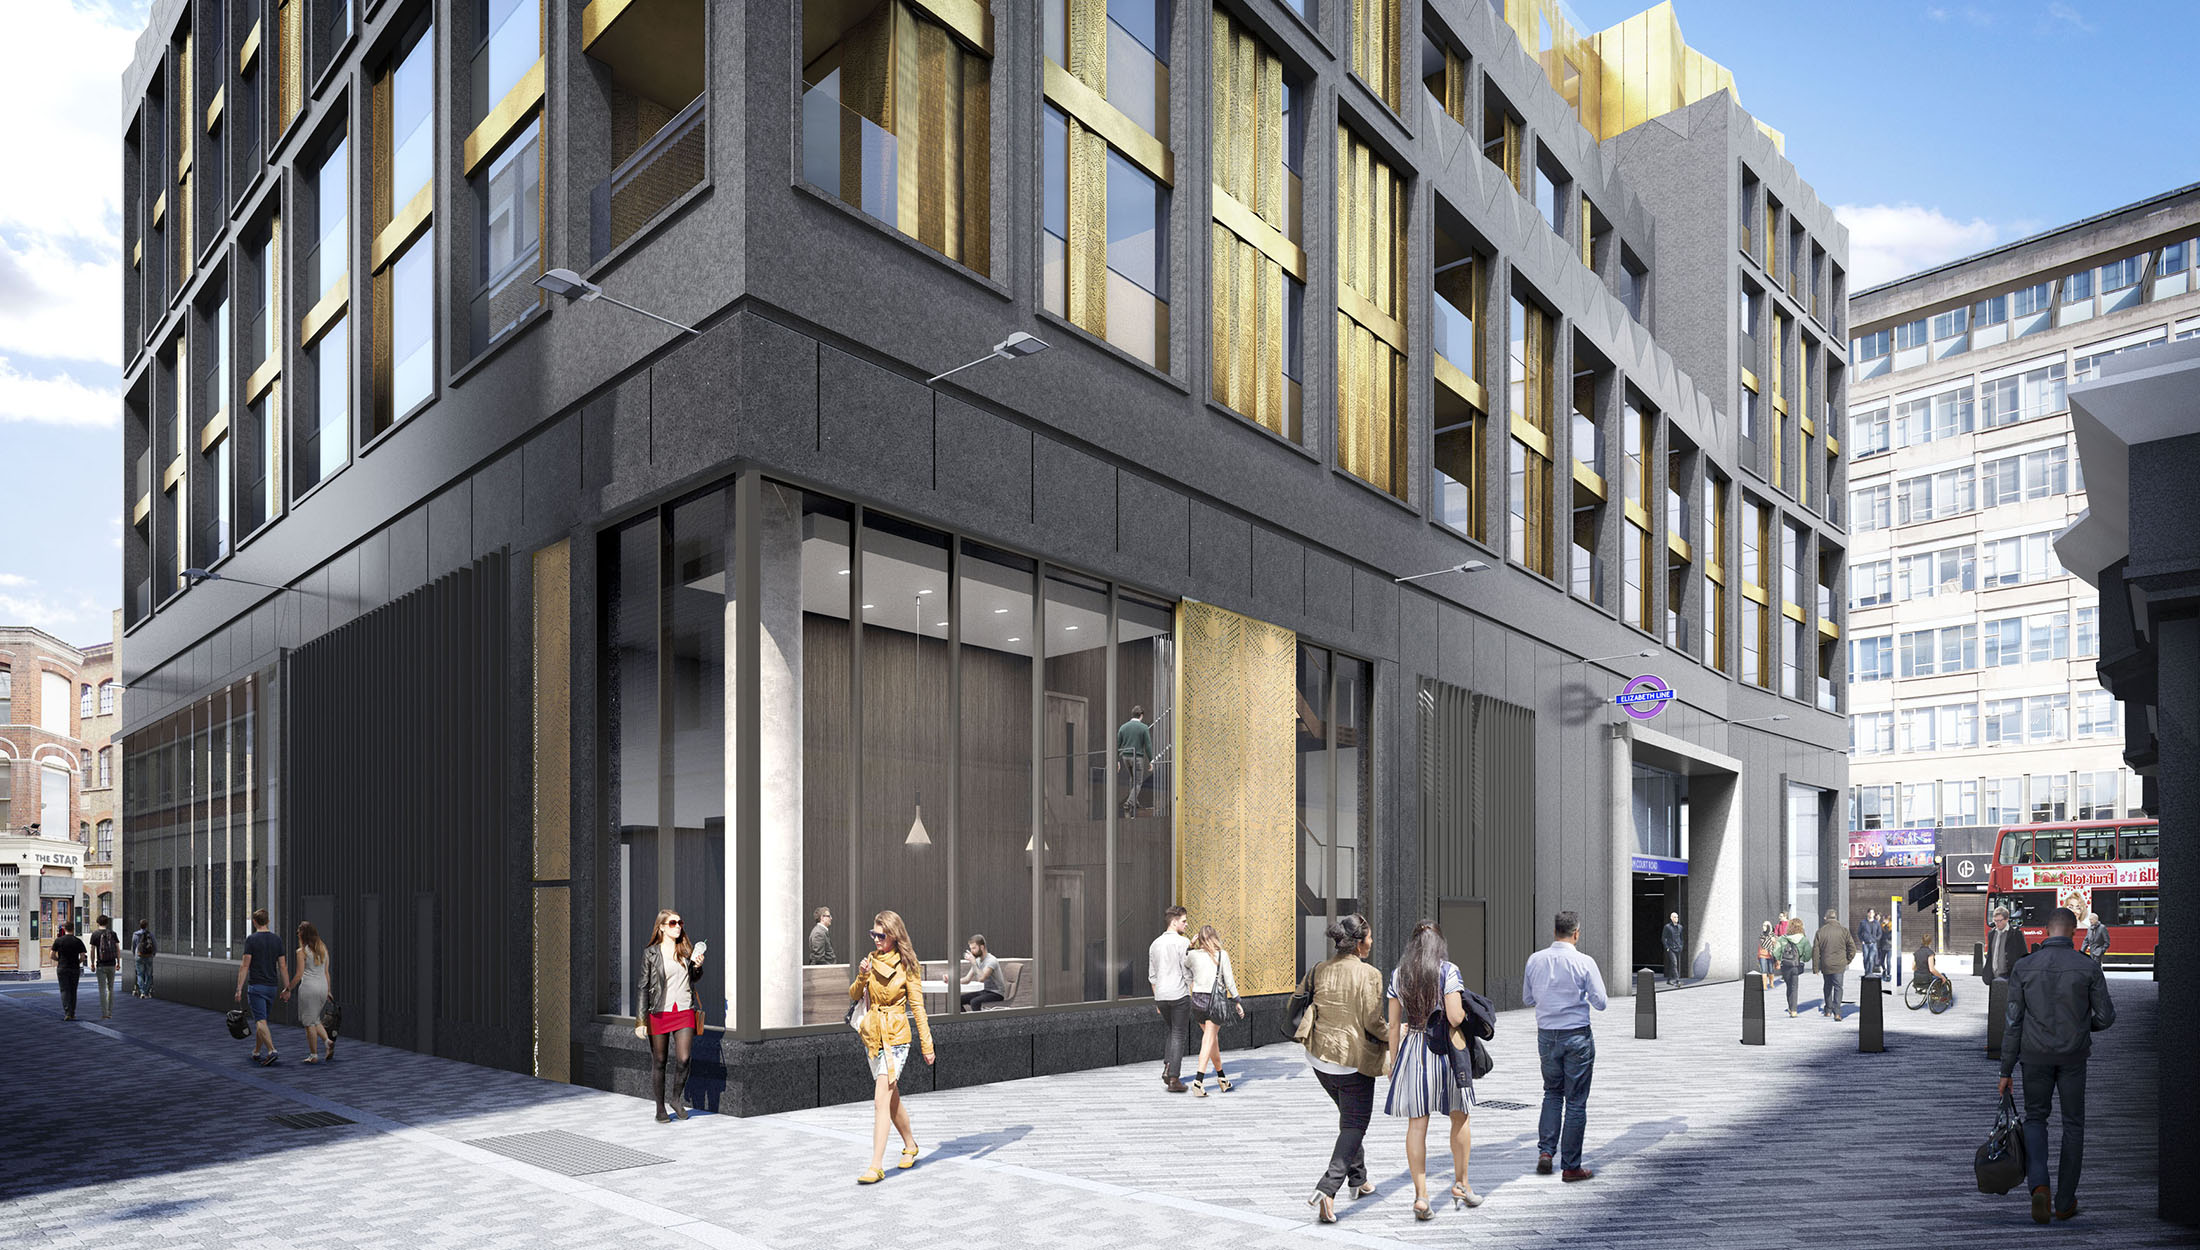 TCRW Soho exterior; computer generated image intended for illustrative purposes only, ©Galliard Homes